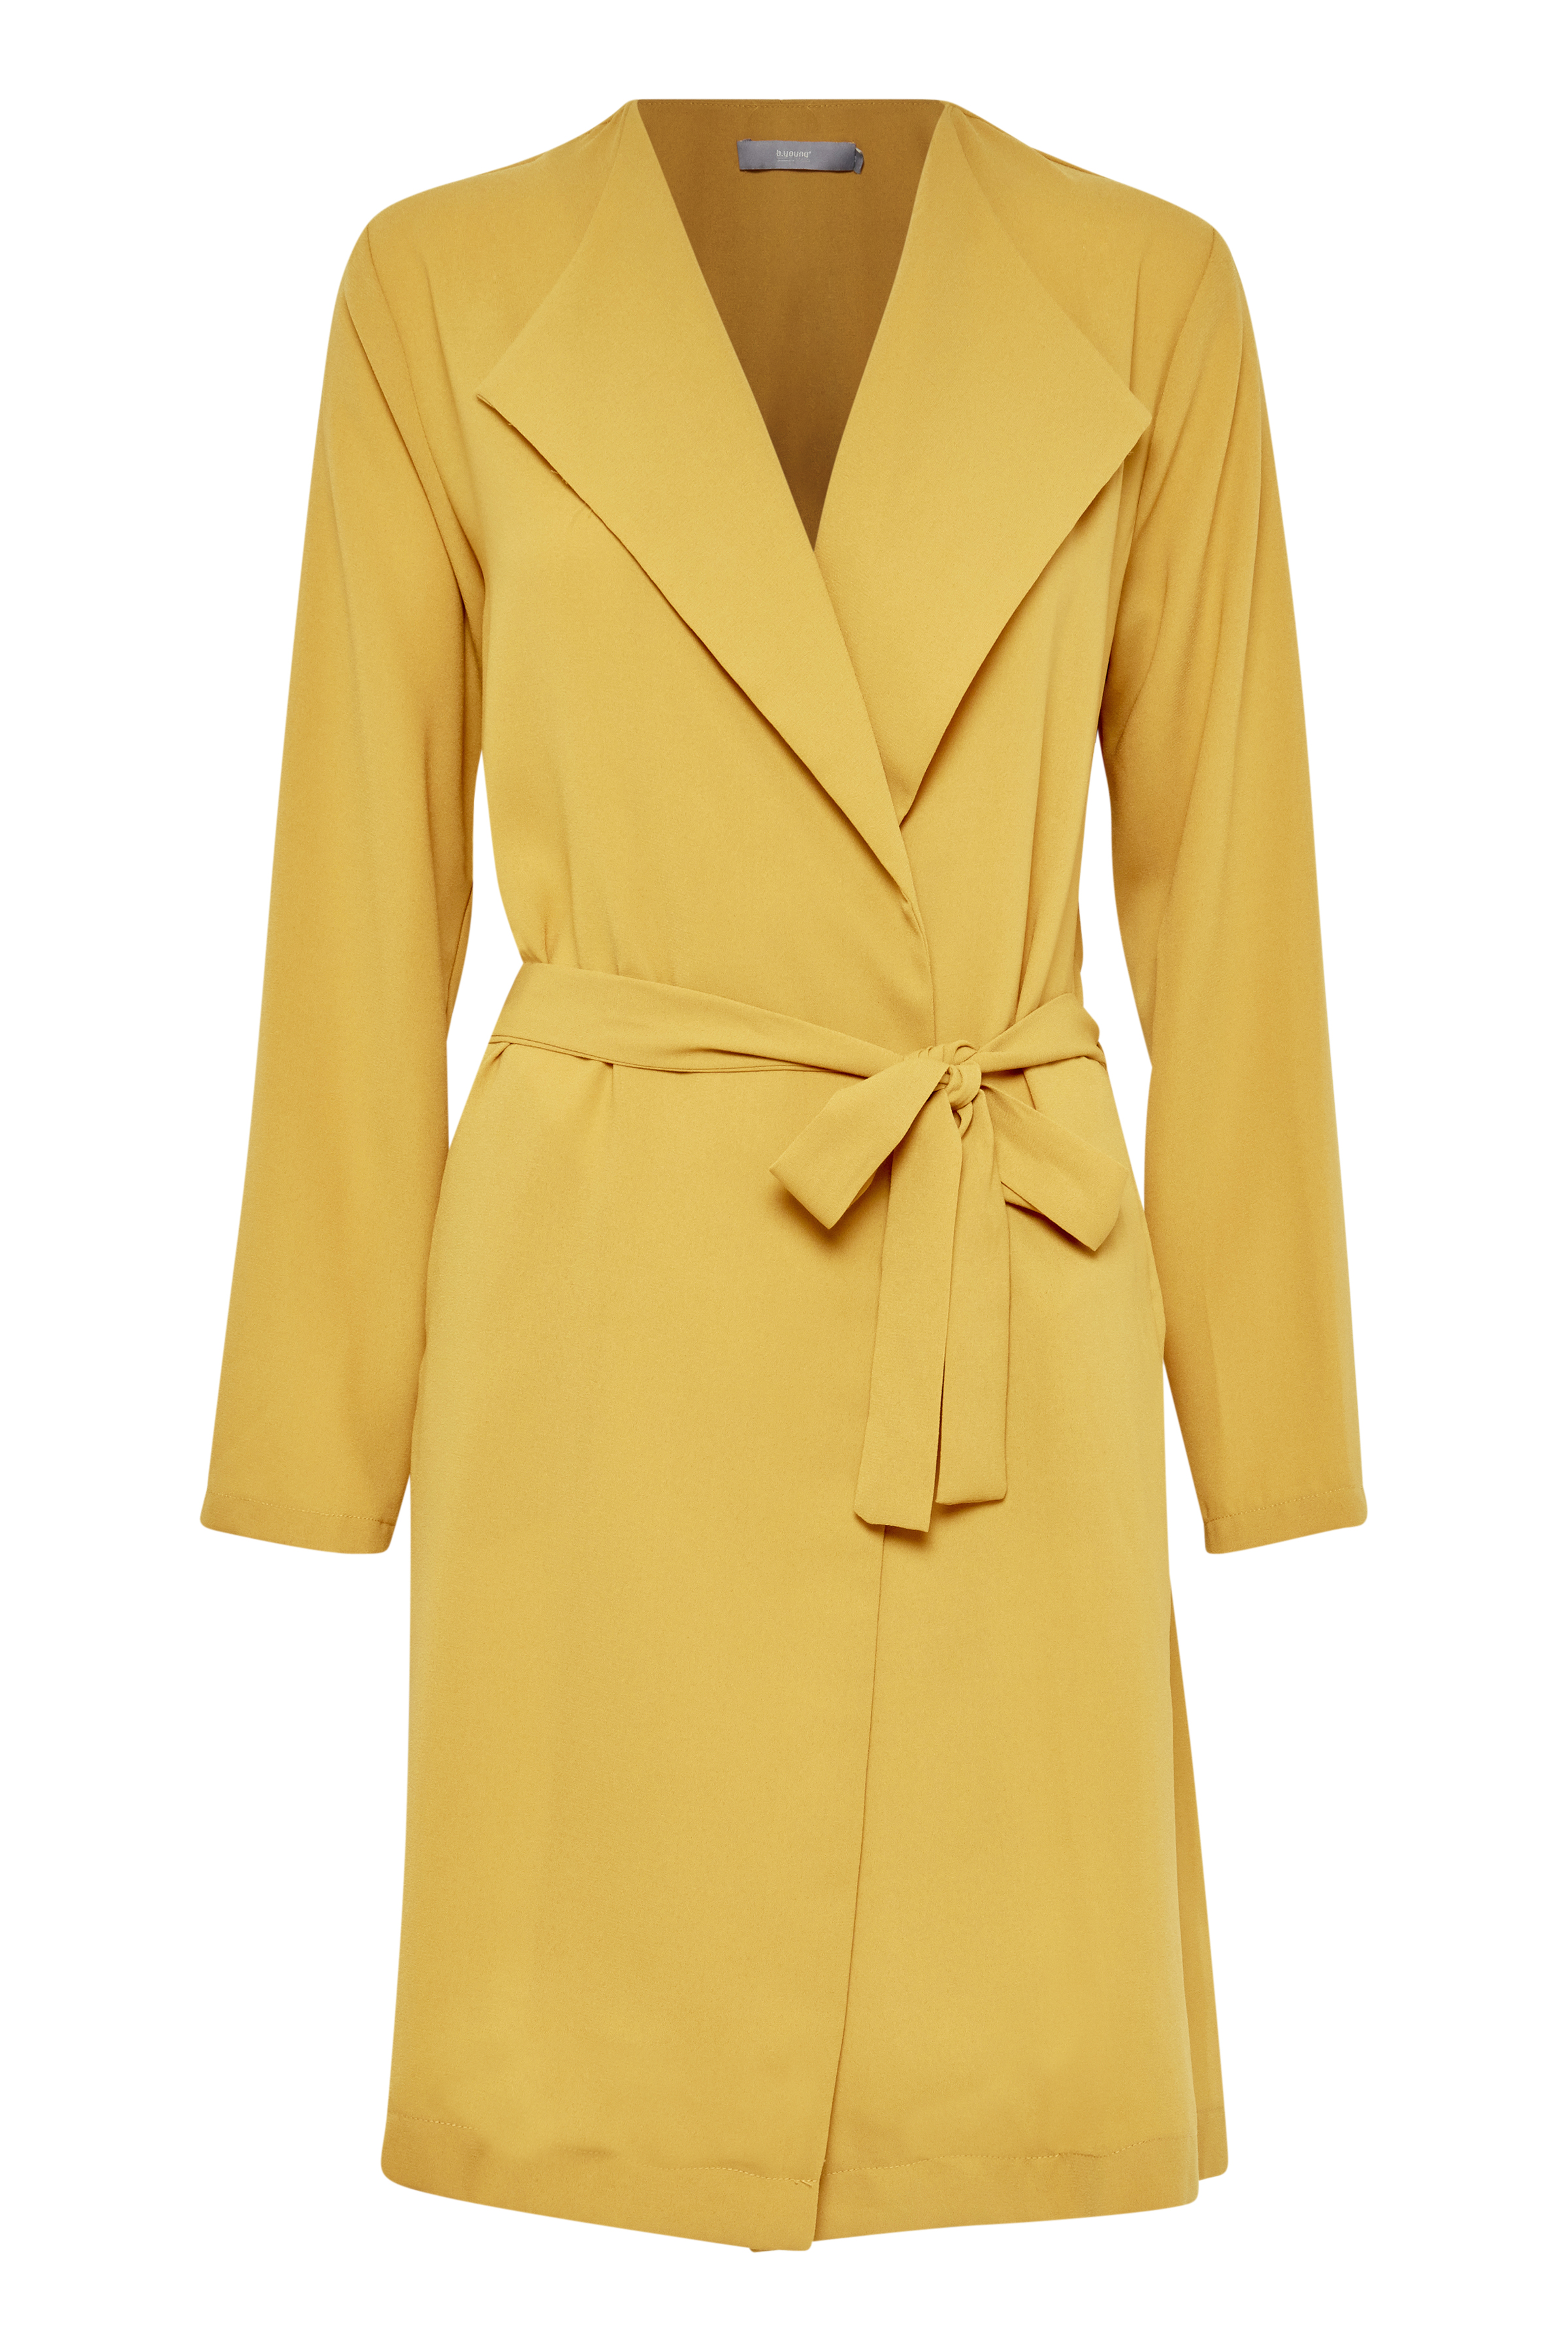 Ochre Yellow Jacket from b.young – Buy Ochre Yellow Jacket from size 34-42 here